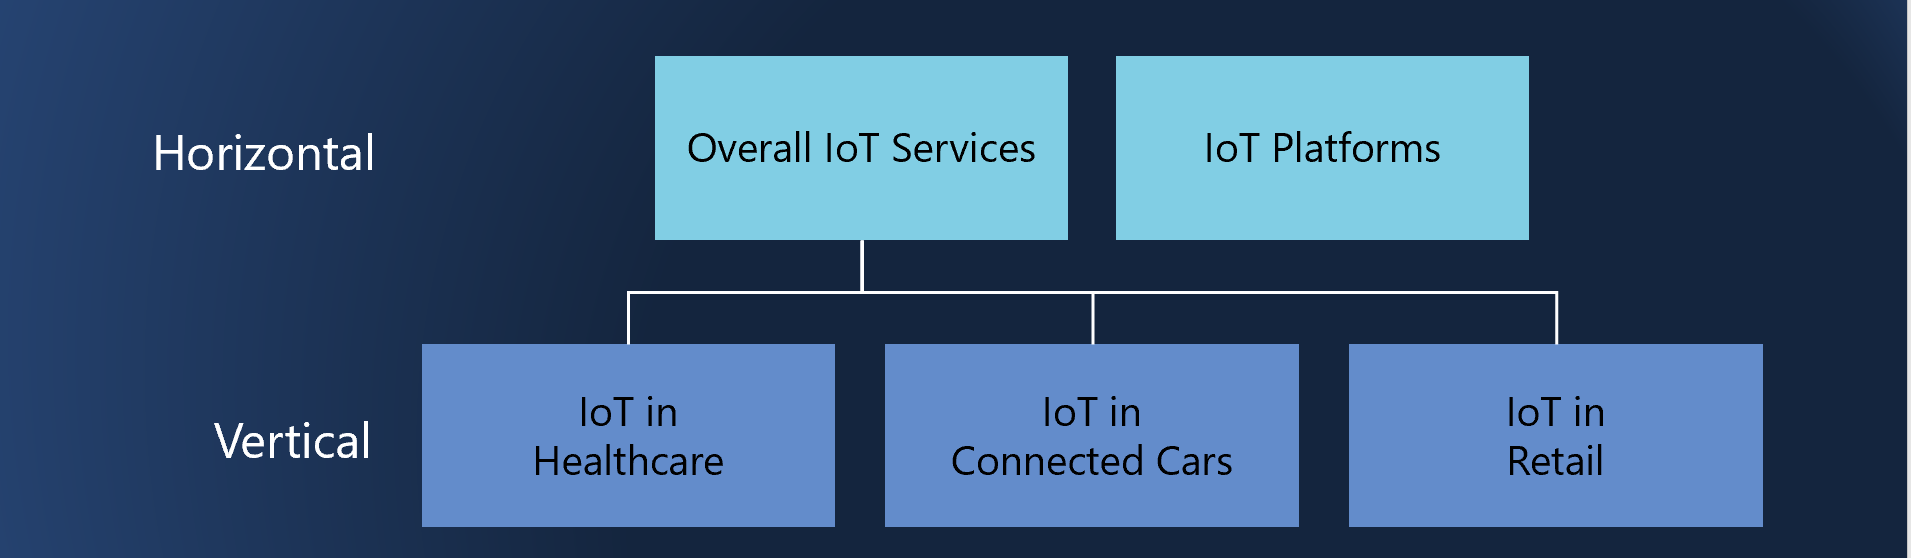 ISG Provider Lens Internet of Things Quadrant Reports 2018